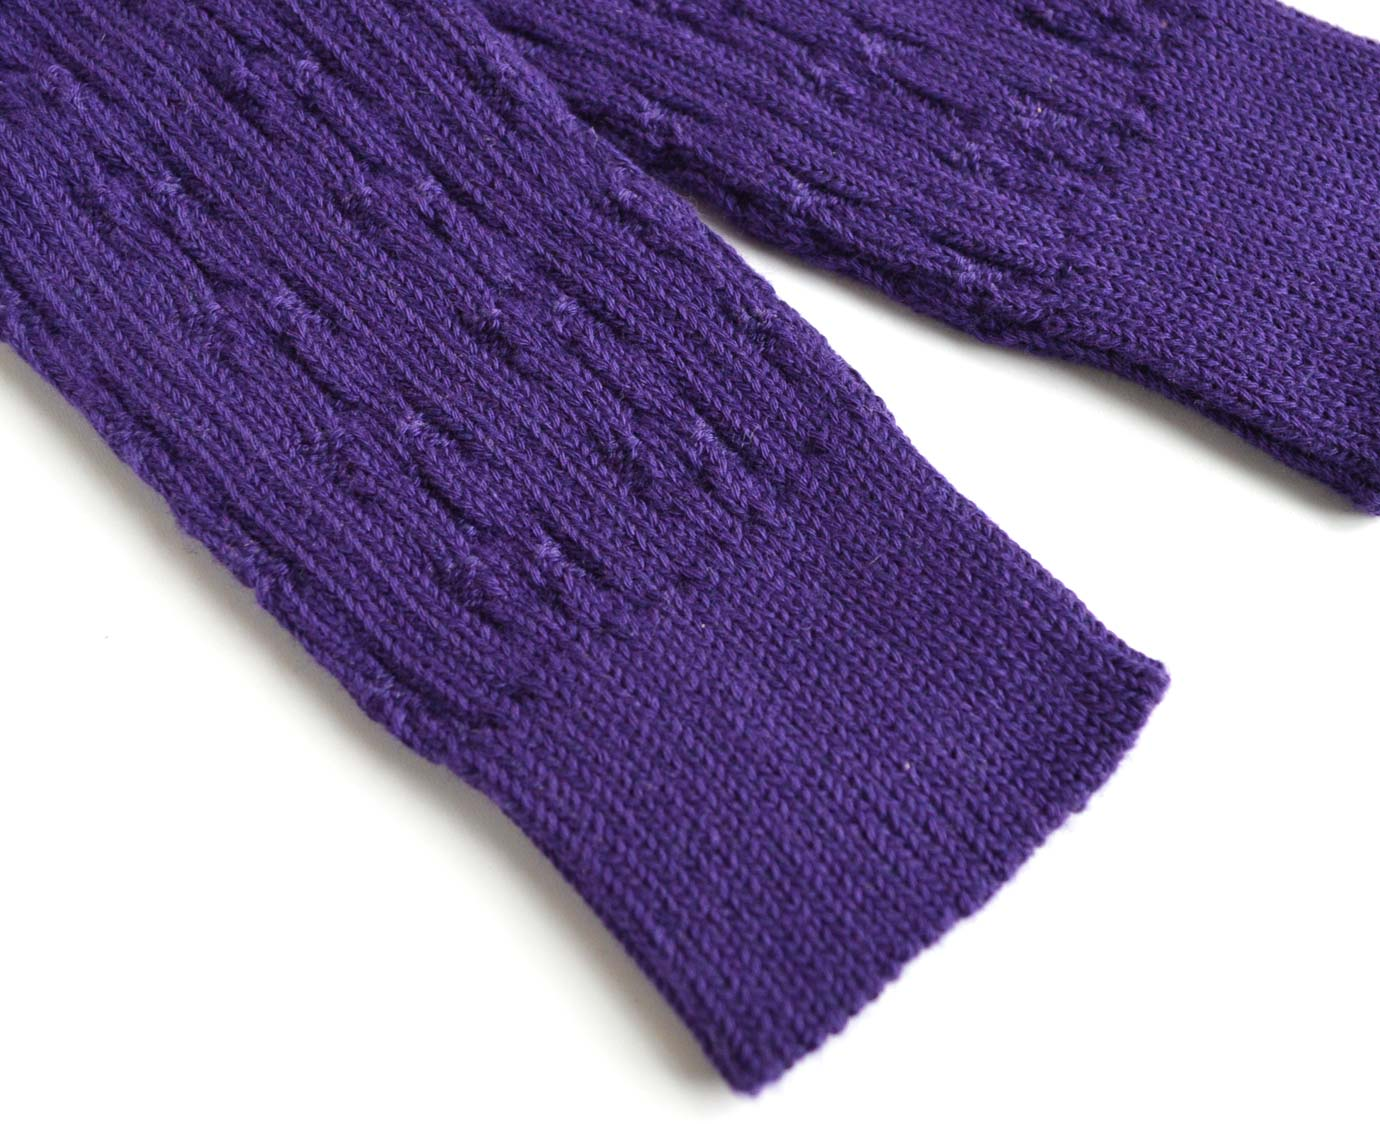 Beenwarmers 'Knit'